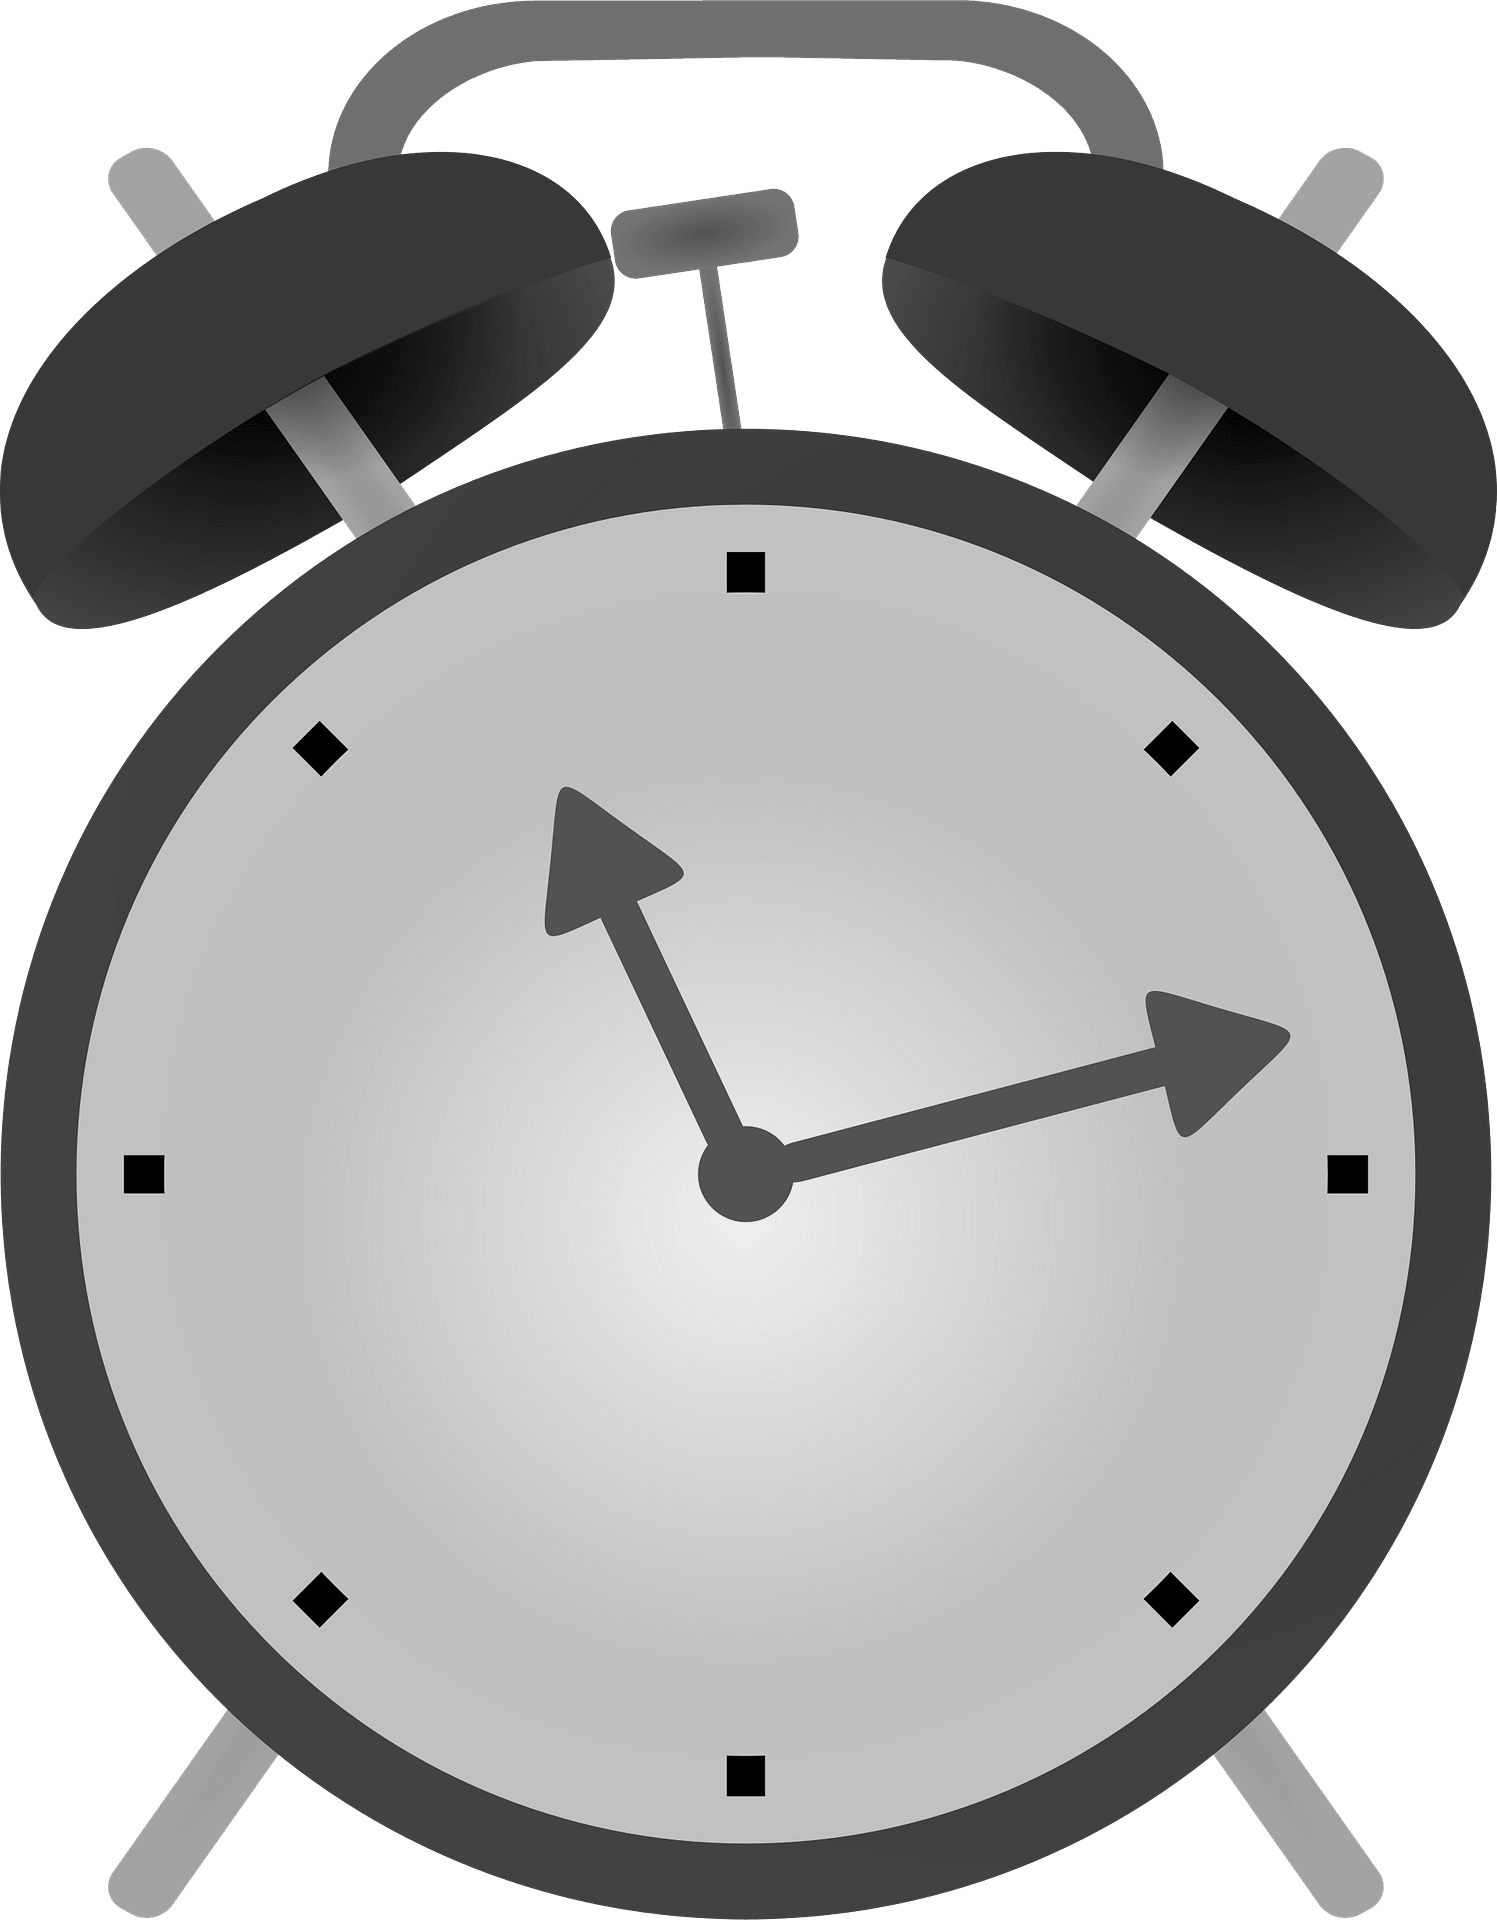 Free Picture Of An Alarm Clock, Download Free Clip Art, Free Clip Art on  Clipart Library